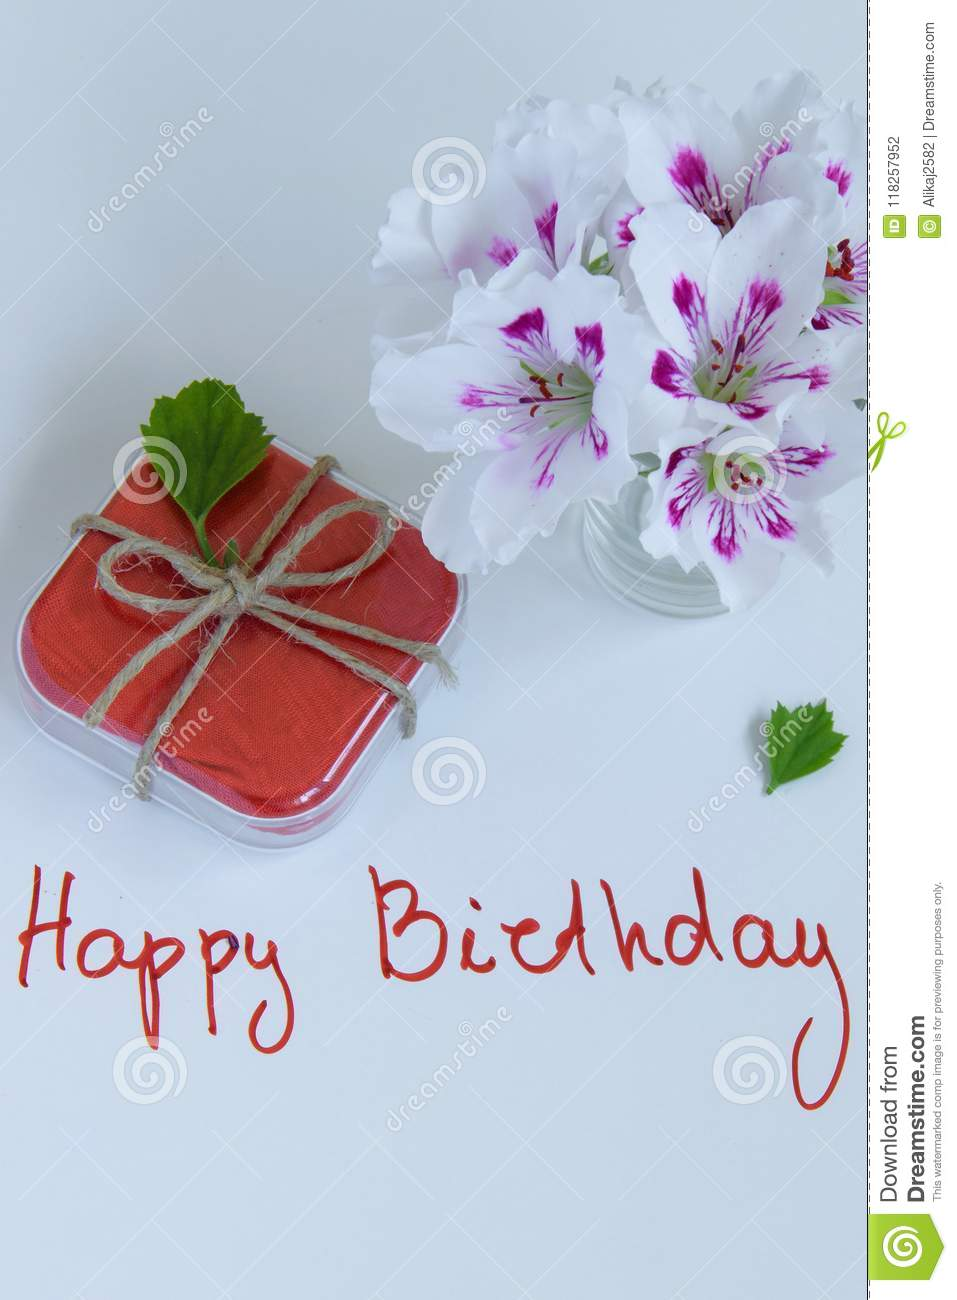 Happy birthday greeting card with gift box and fresh flowers stock download happy birthday greeting card with gift box and fresh flowers stock photo image of izmirmasajfo